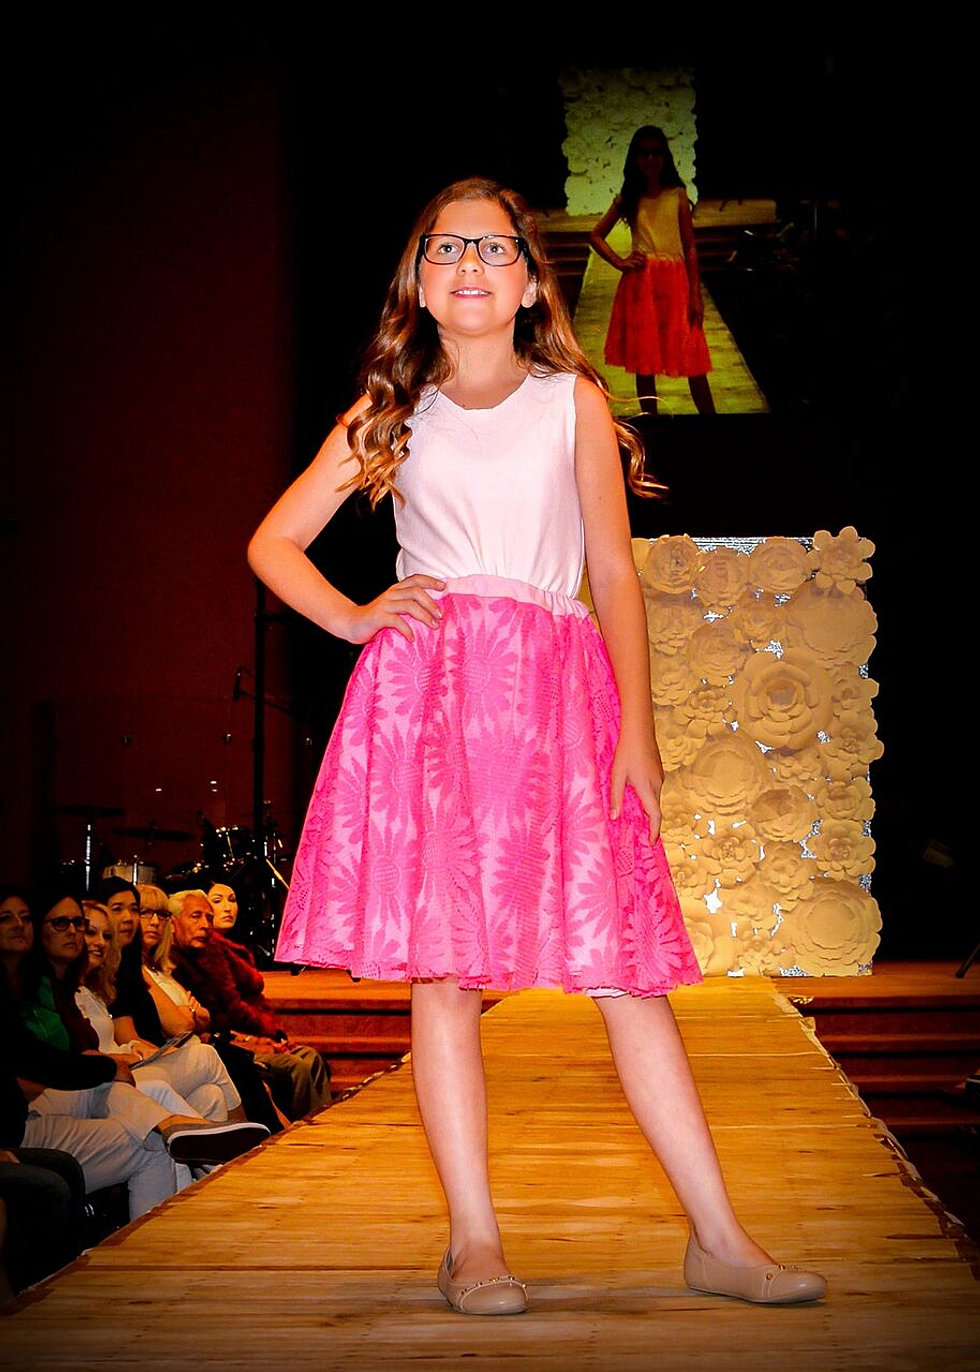 Order of program for church fashion show - Rtr 118 Of 177